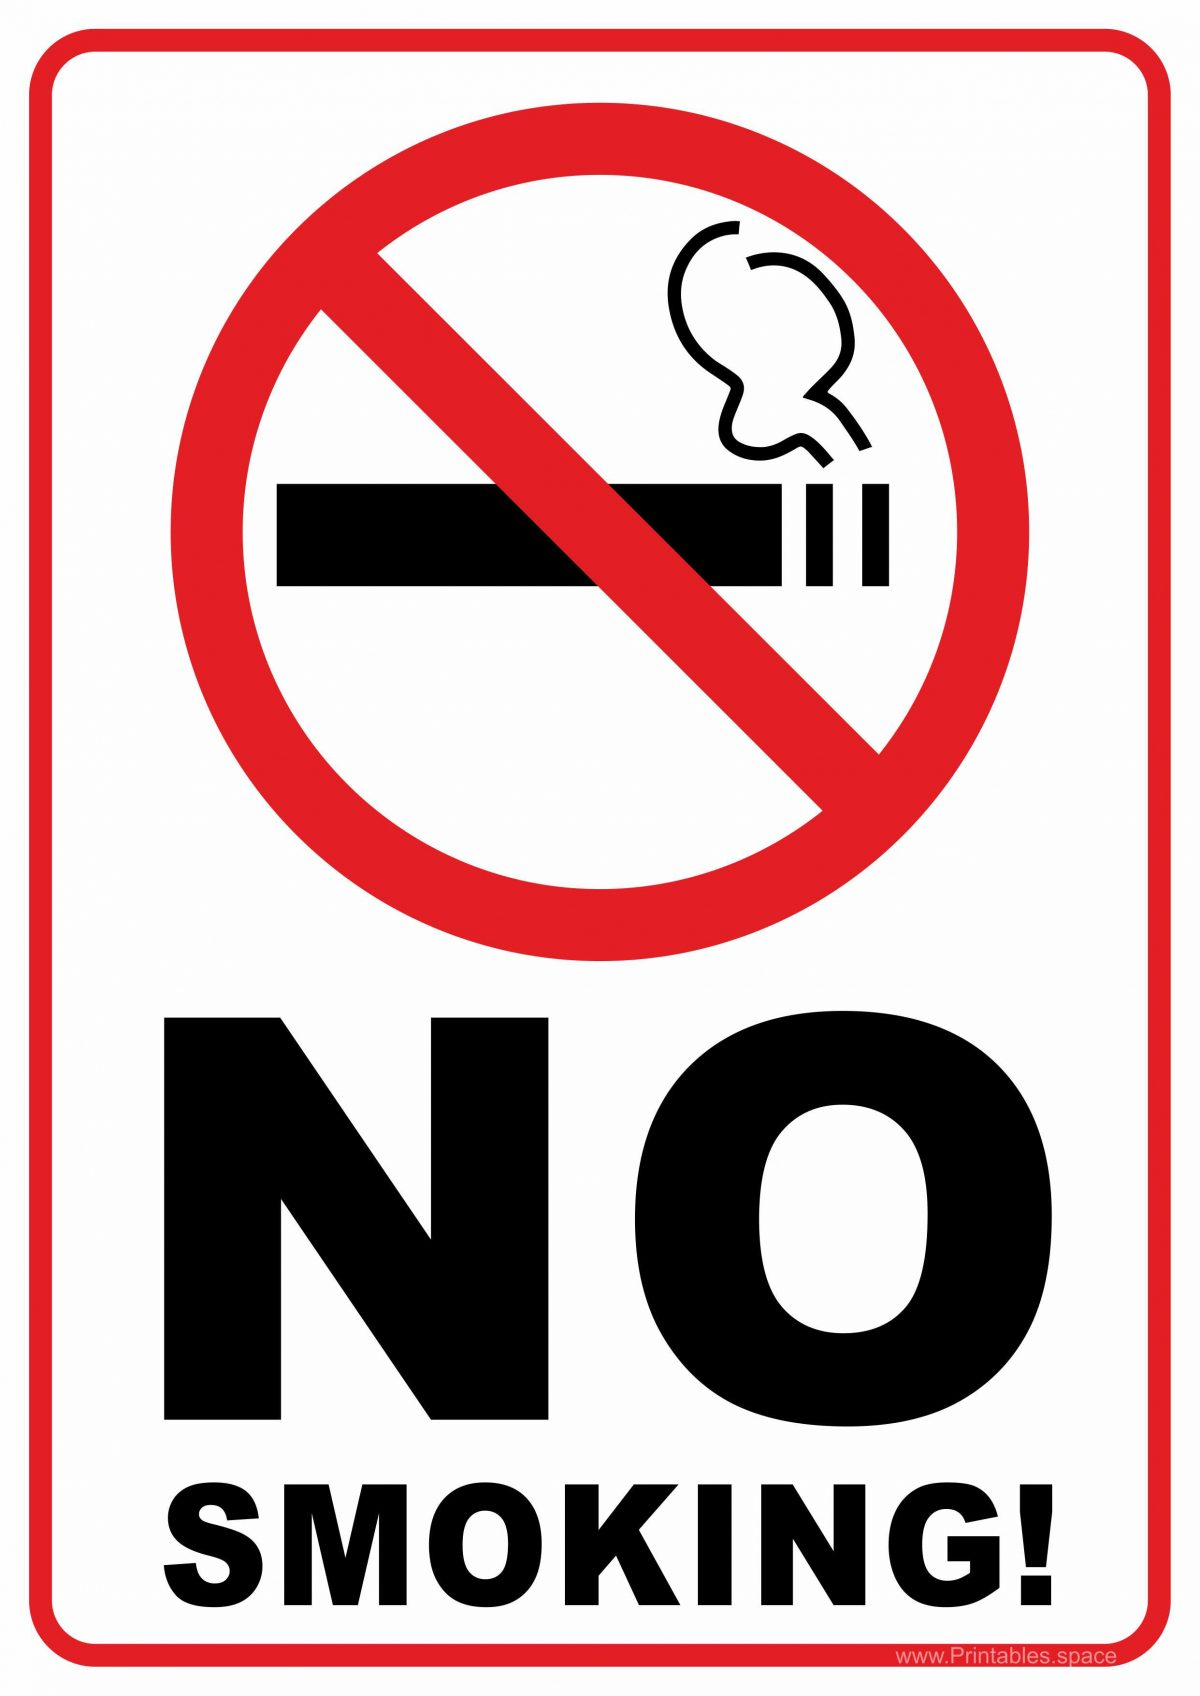 image about No Pets Allowed Sign Free Printable named No Cigarette smoking Signal - Totally free Printables